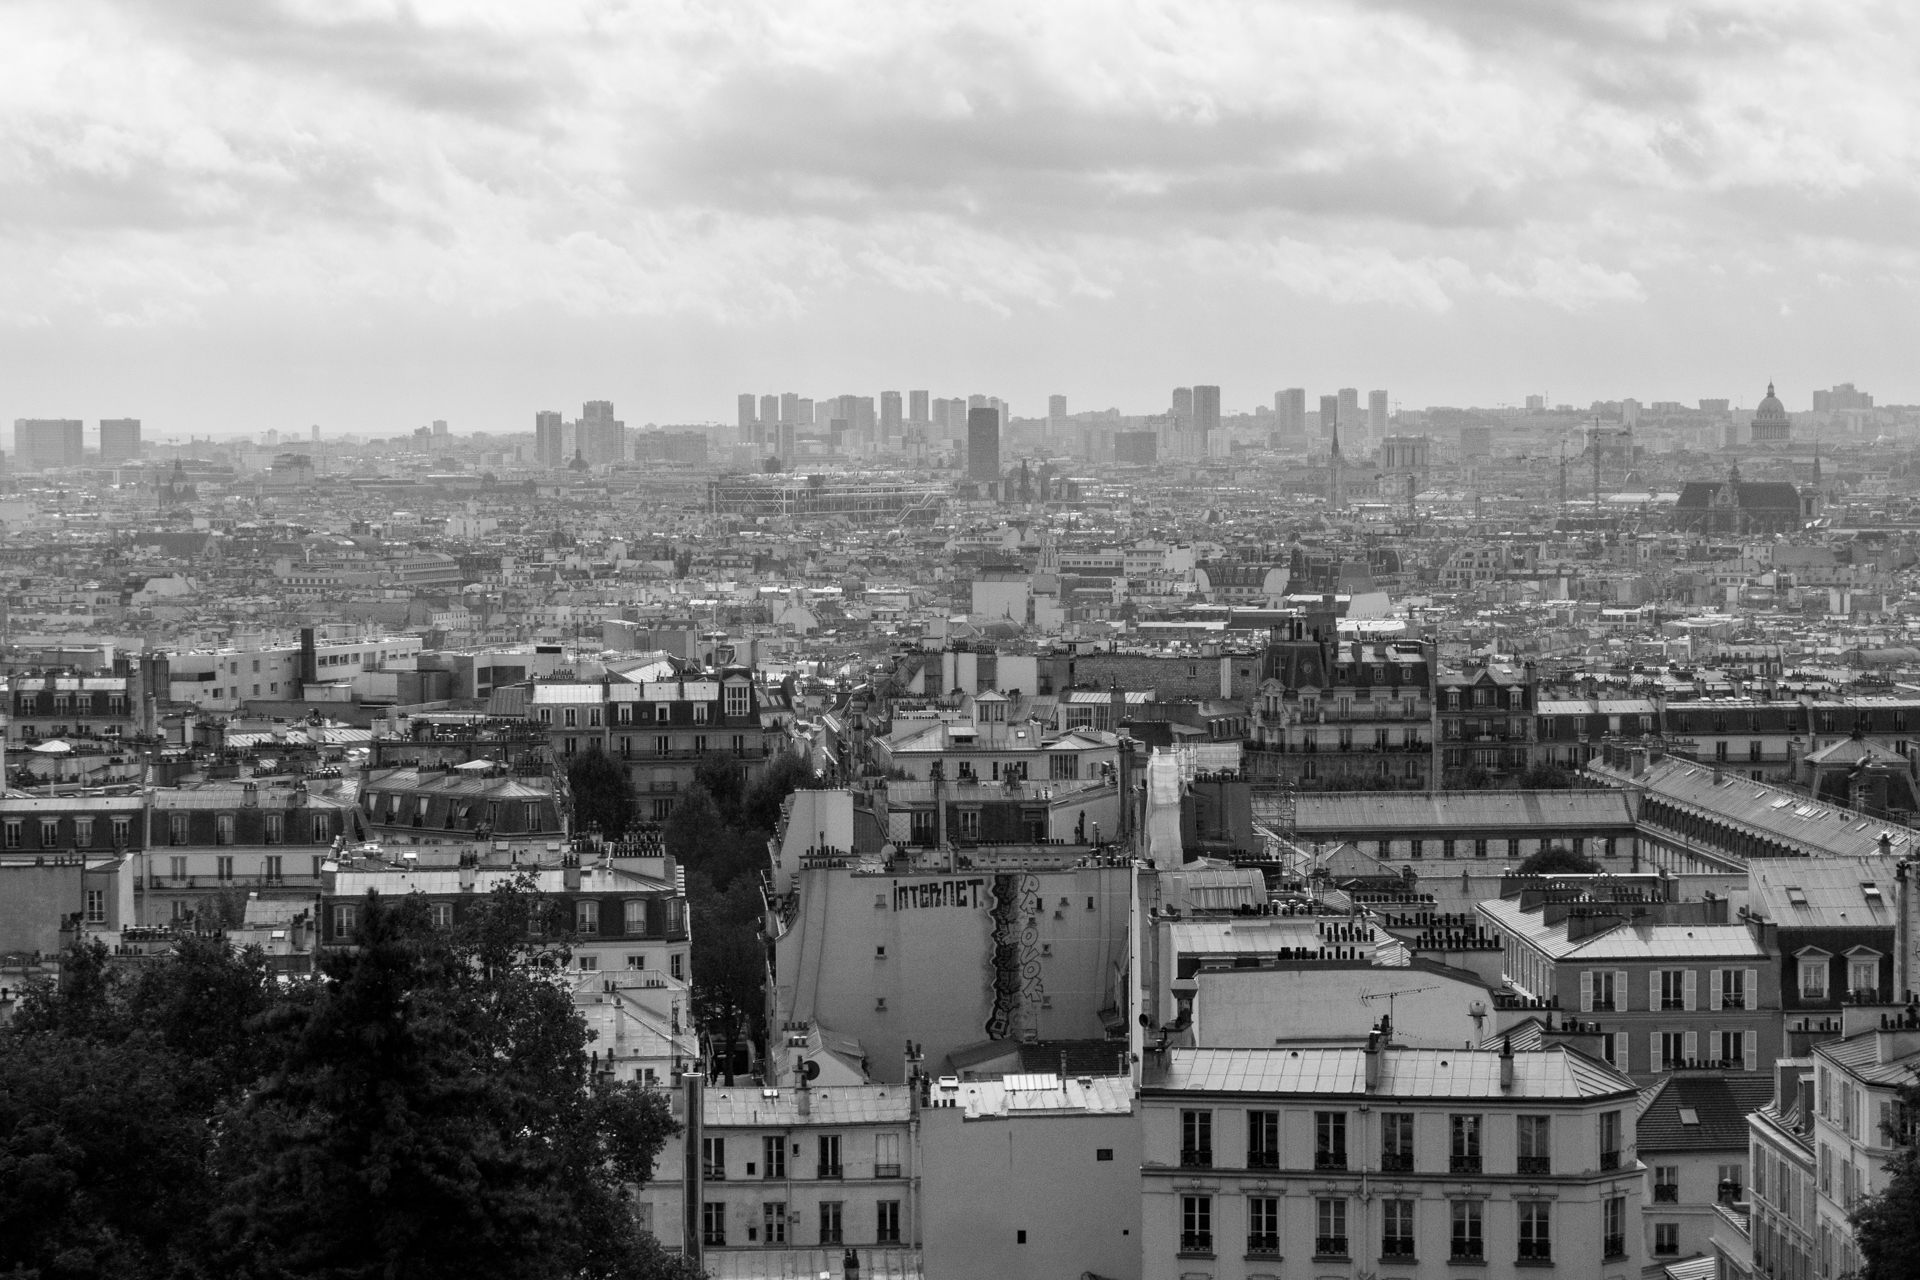 A View On Cities, Sacré-Coeur, Paris - Photo: Stephan Wetaas